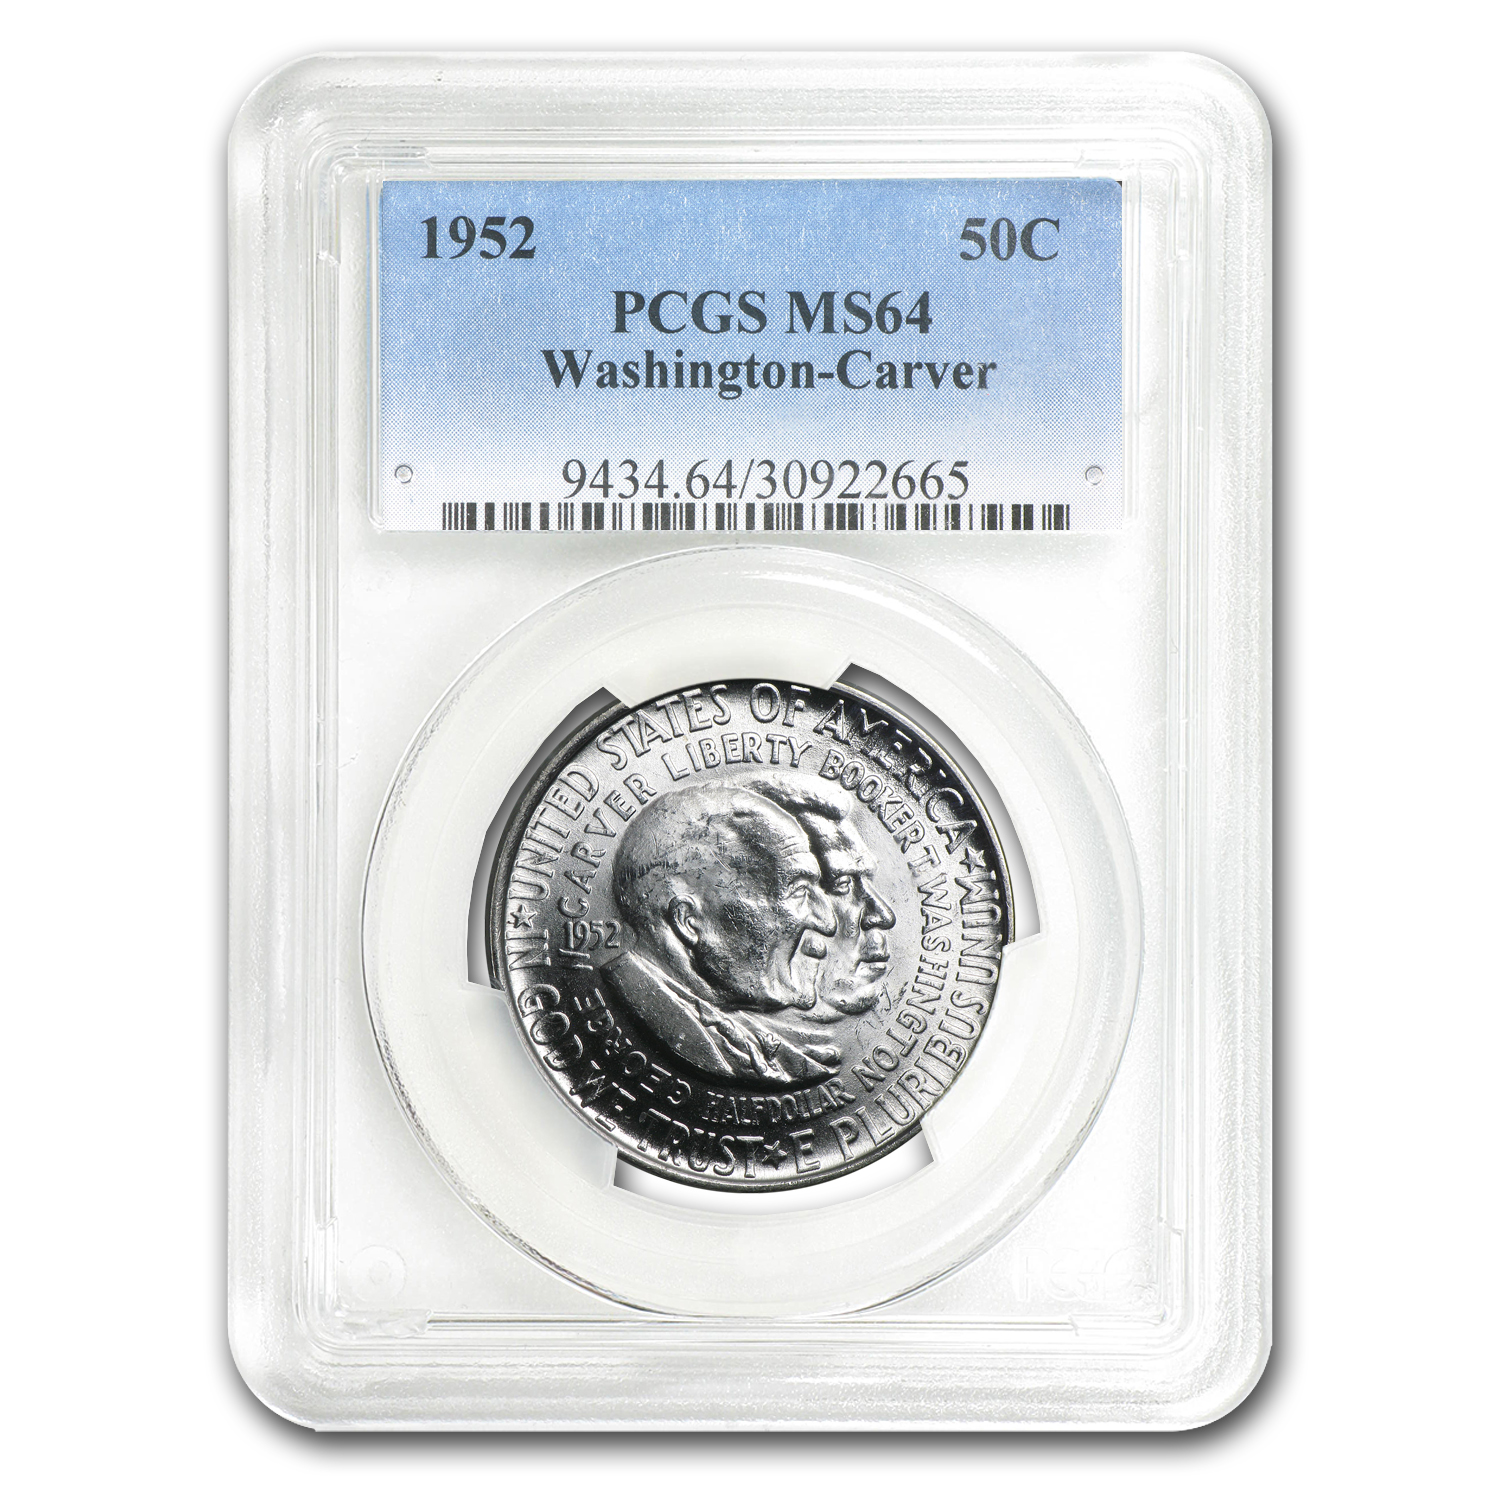 1952 Washington-Carver MS-64 PCGS